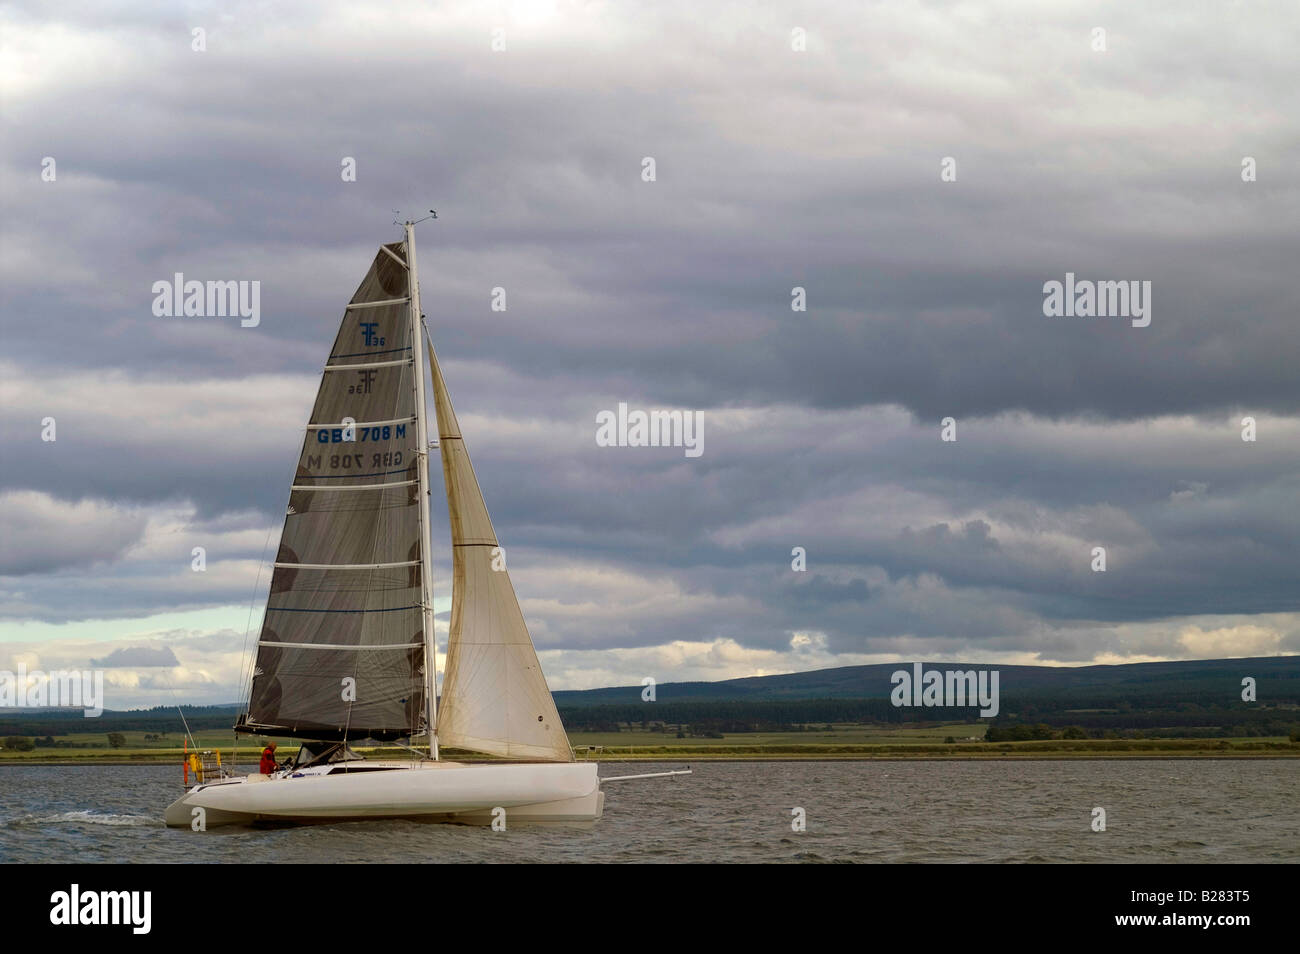 Trimaran sailing in the Moray Firth off Chanonry Point, near Inverness in the Scottish Highlands. - Stock Image